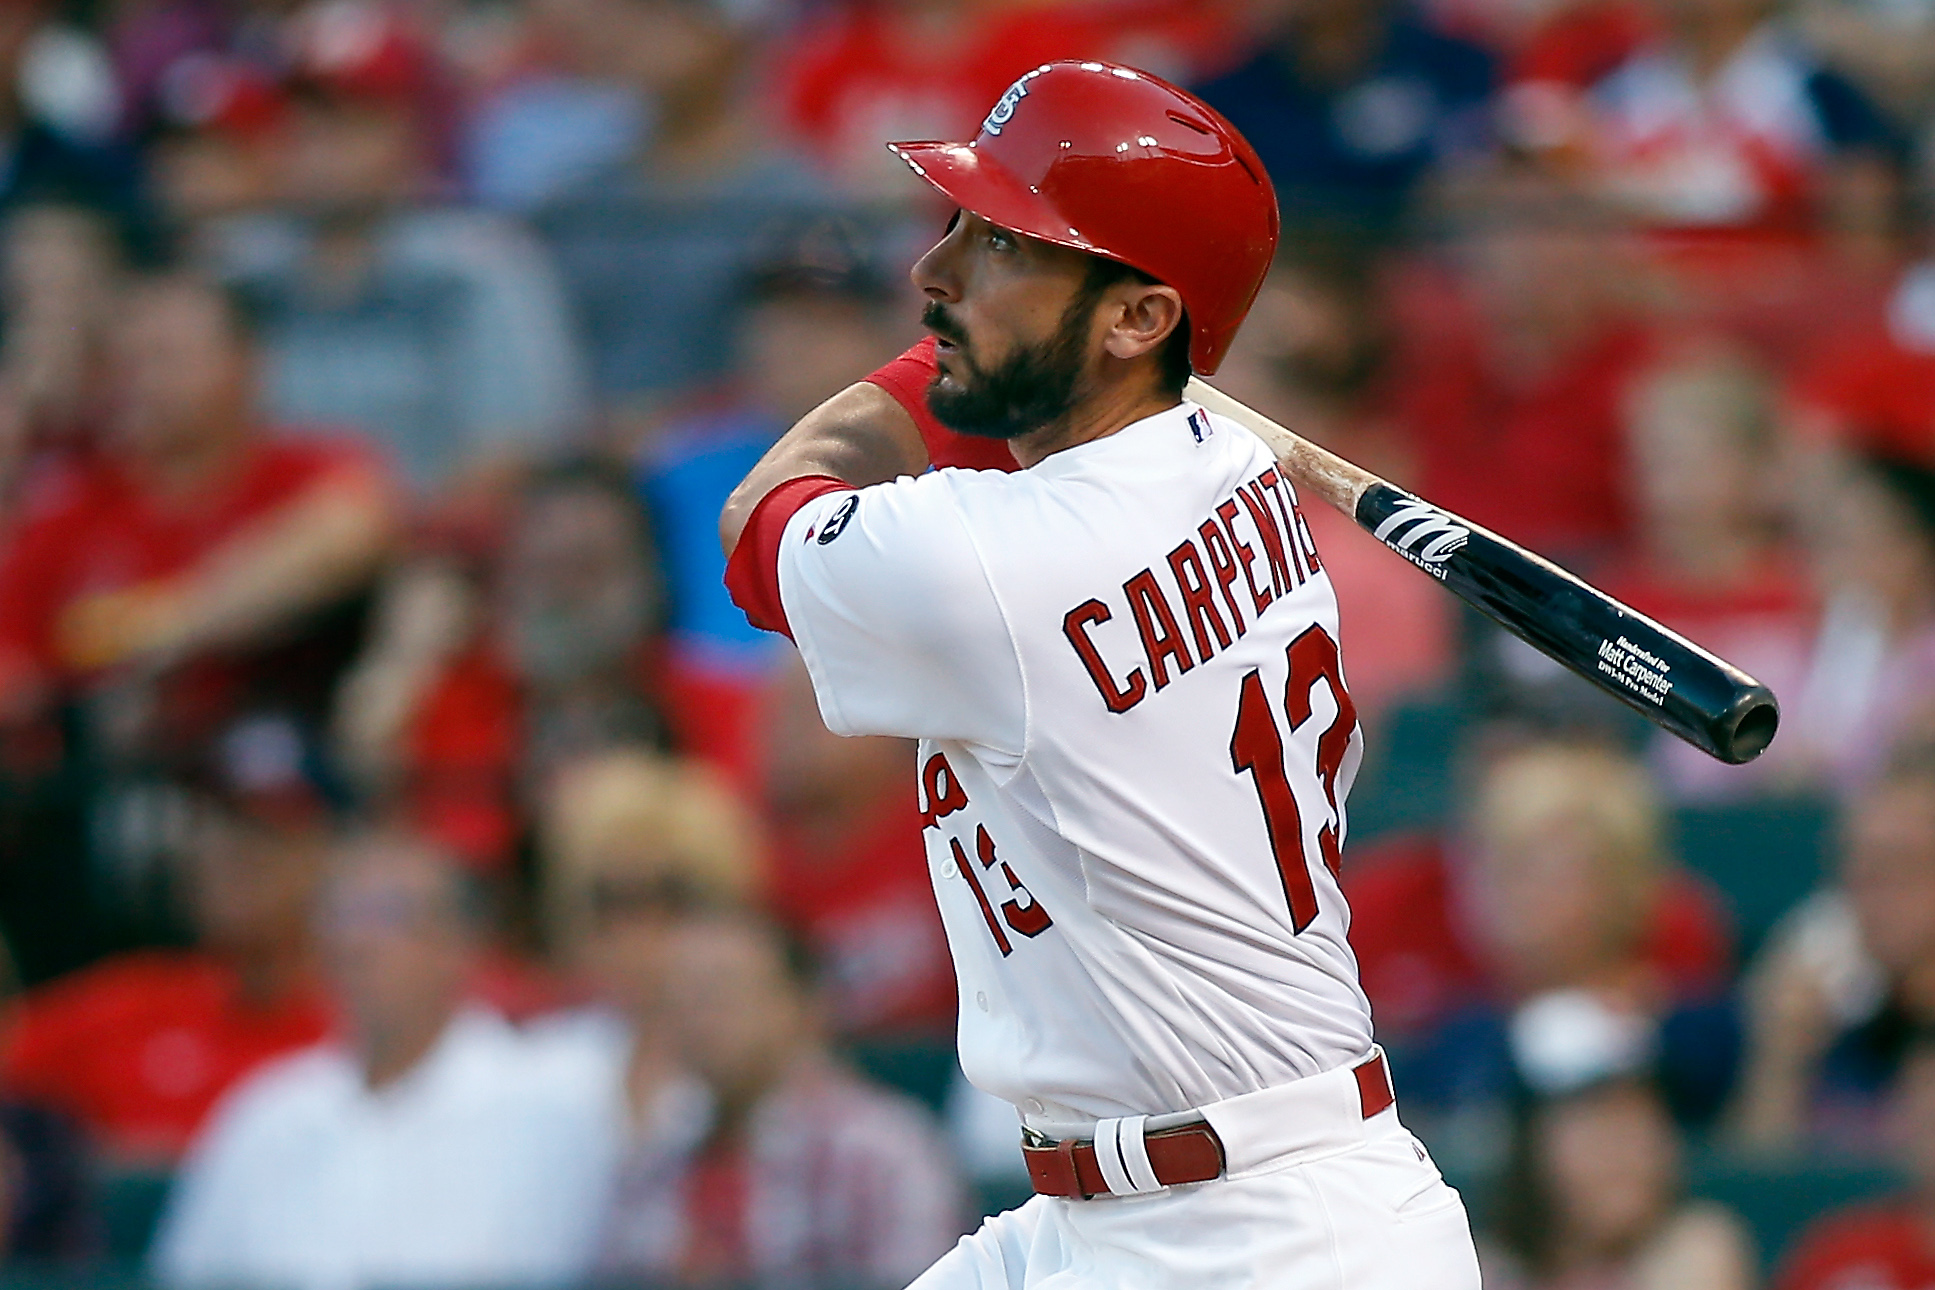 FILE - In this July 31, 2015, file photo, St. Louis Cardinals' Matt Carpenter watches his solo home run during the first inning of a baseball game against the Colorado Rockies in St. Louis. Carpenter really muscled up this season. The St. Louis Cardinals